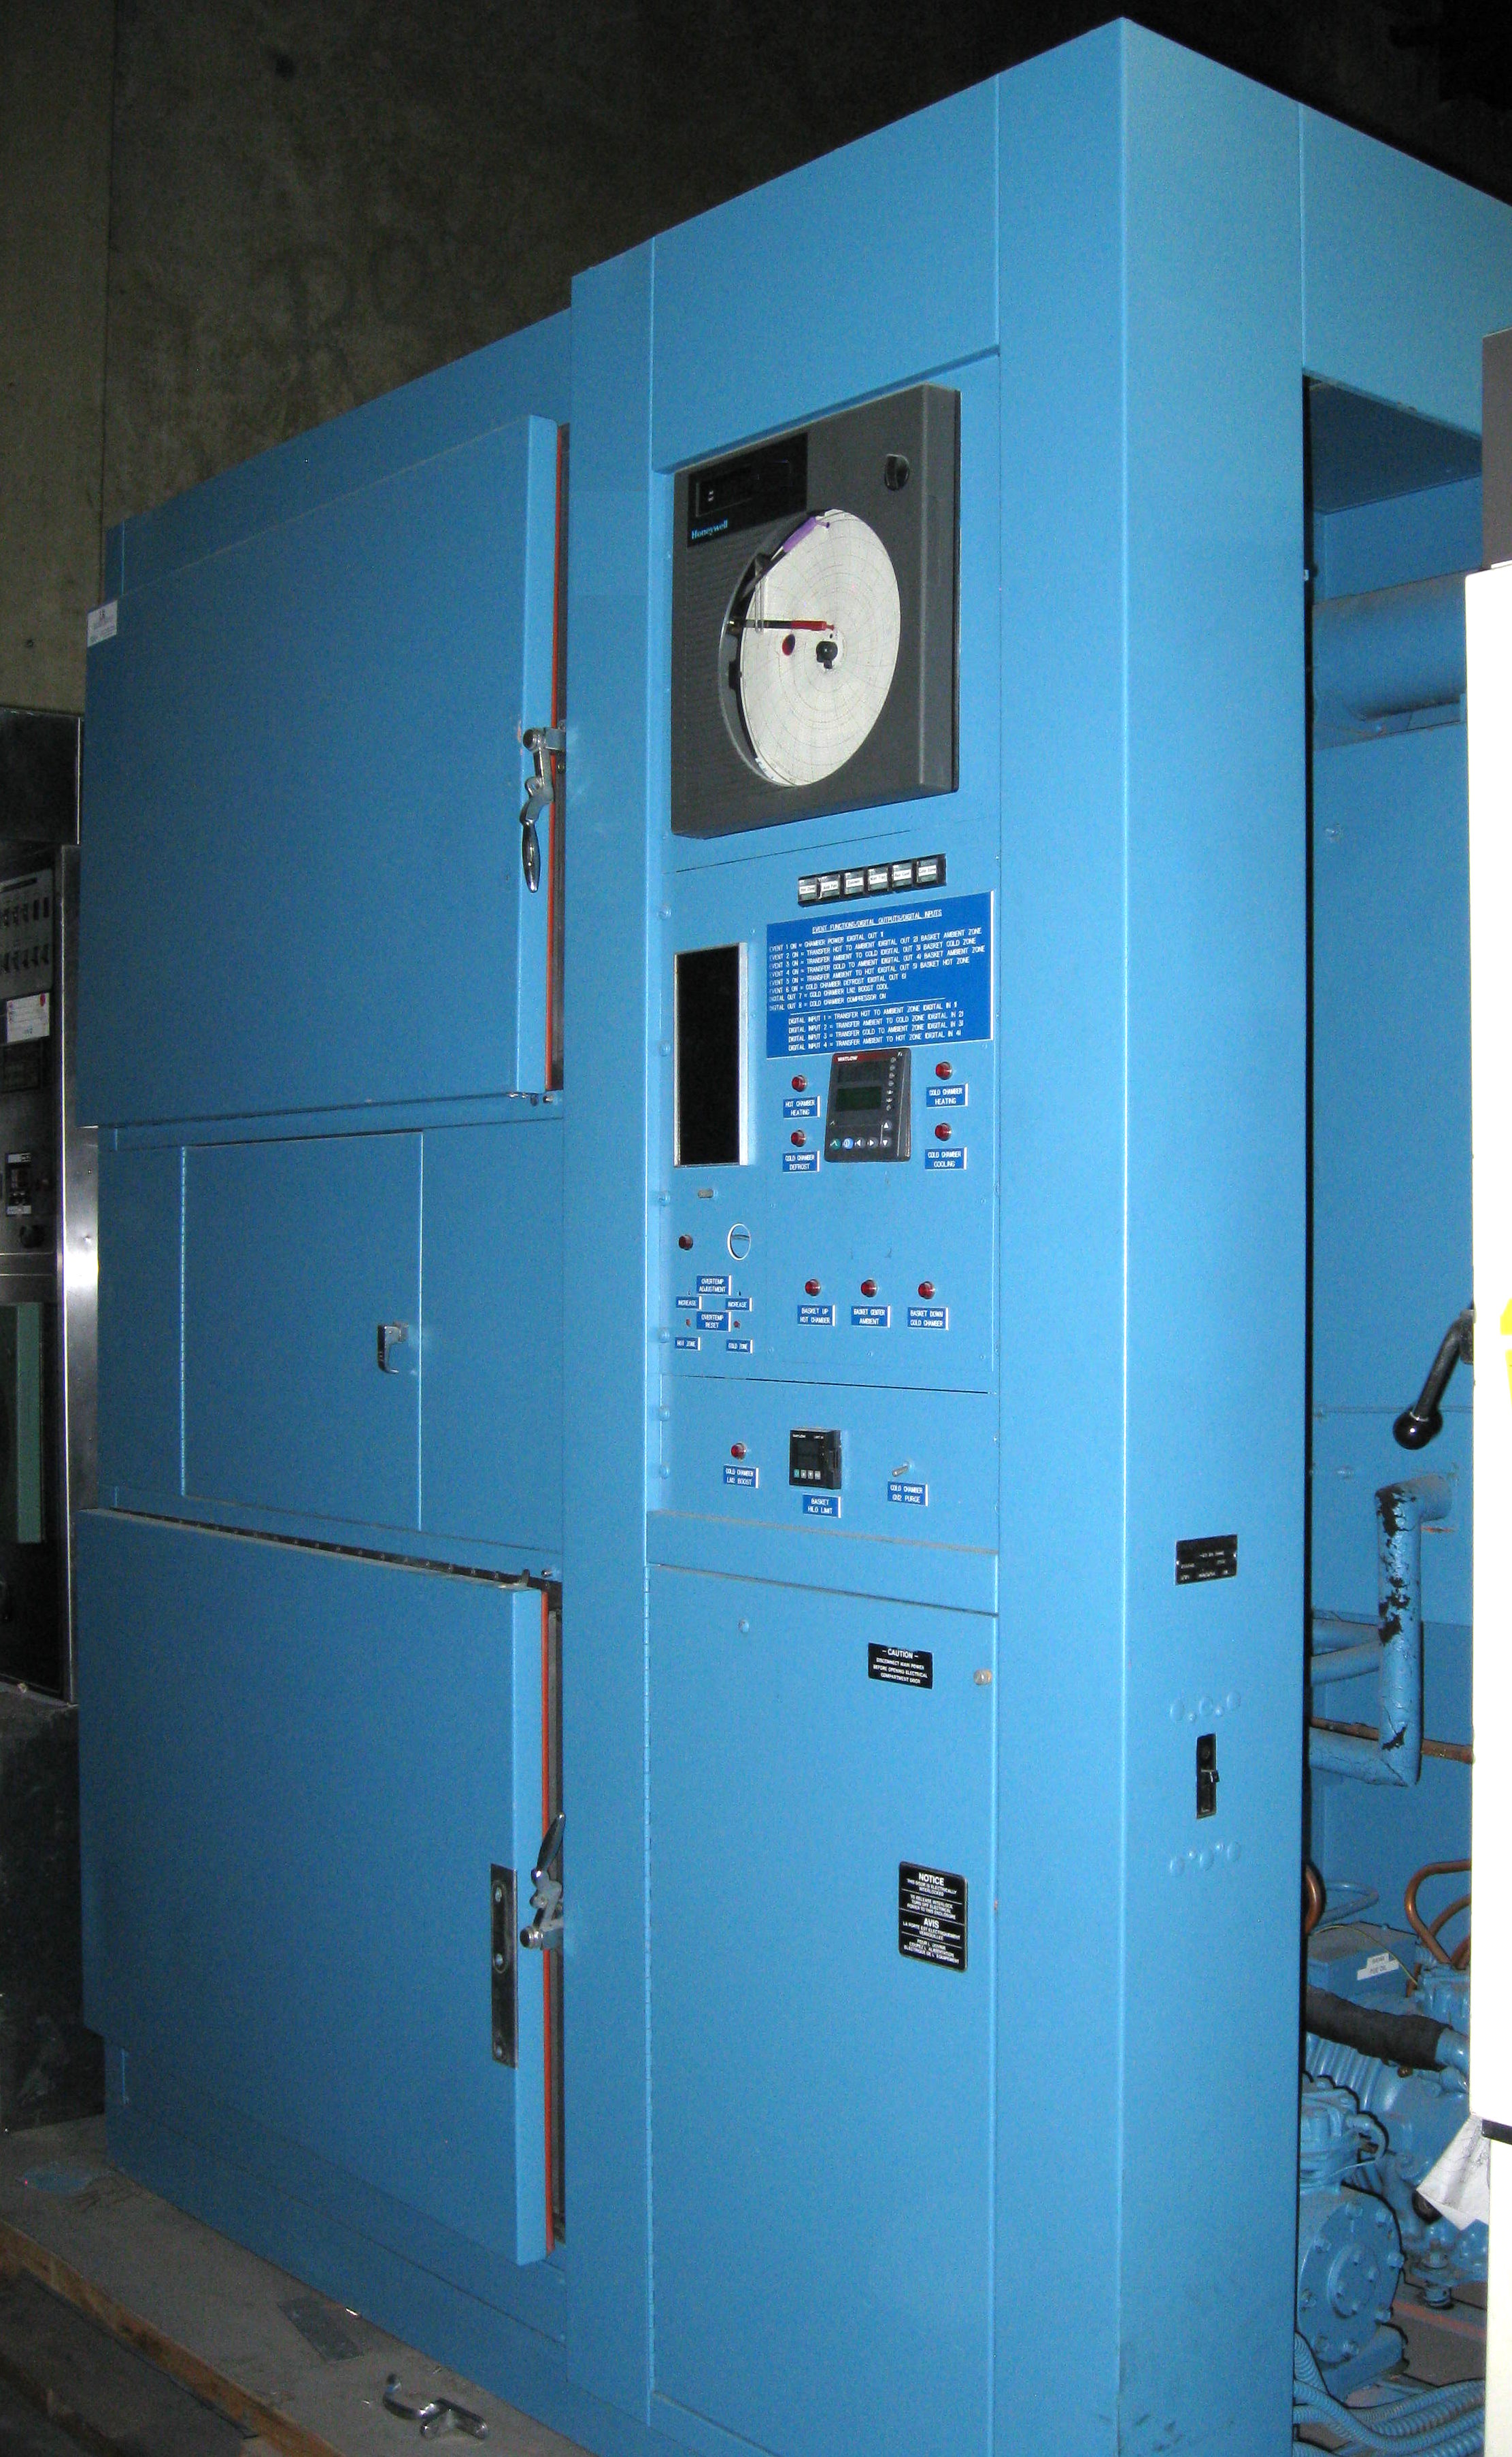 Used RANSCO 7303-3 Thermal Shock Chambers